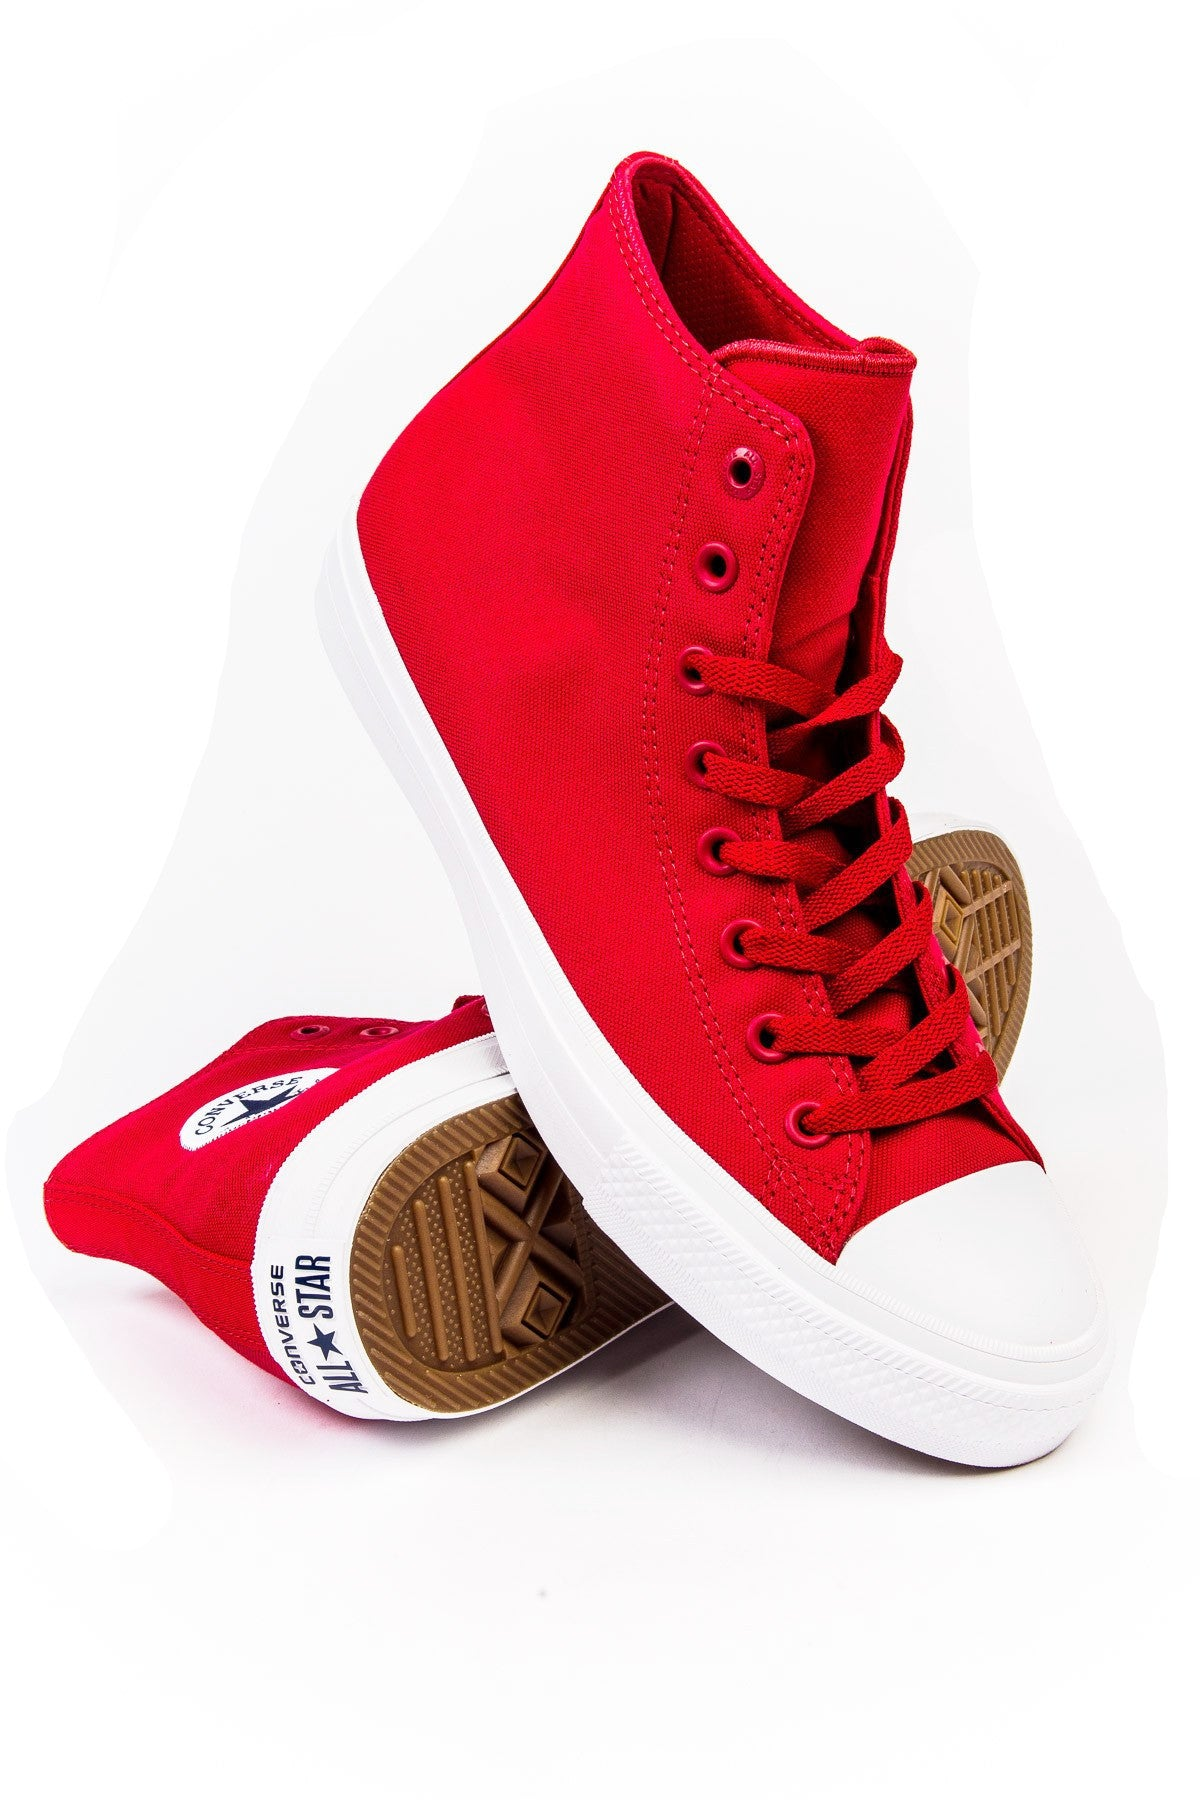 Sneakers - Converse Chuck Taylor  All Star II Red Hi Sneaker